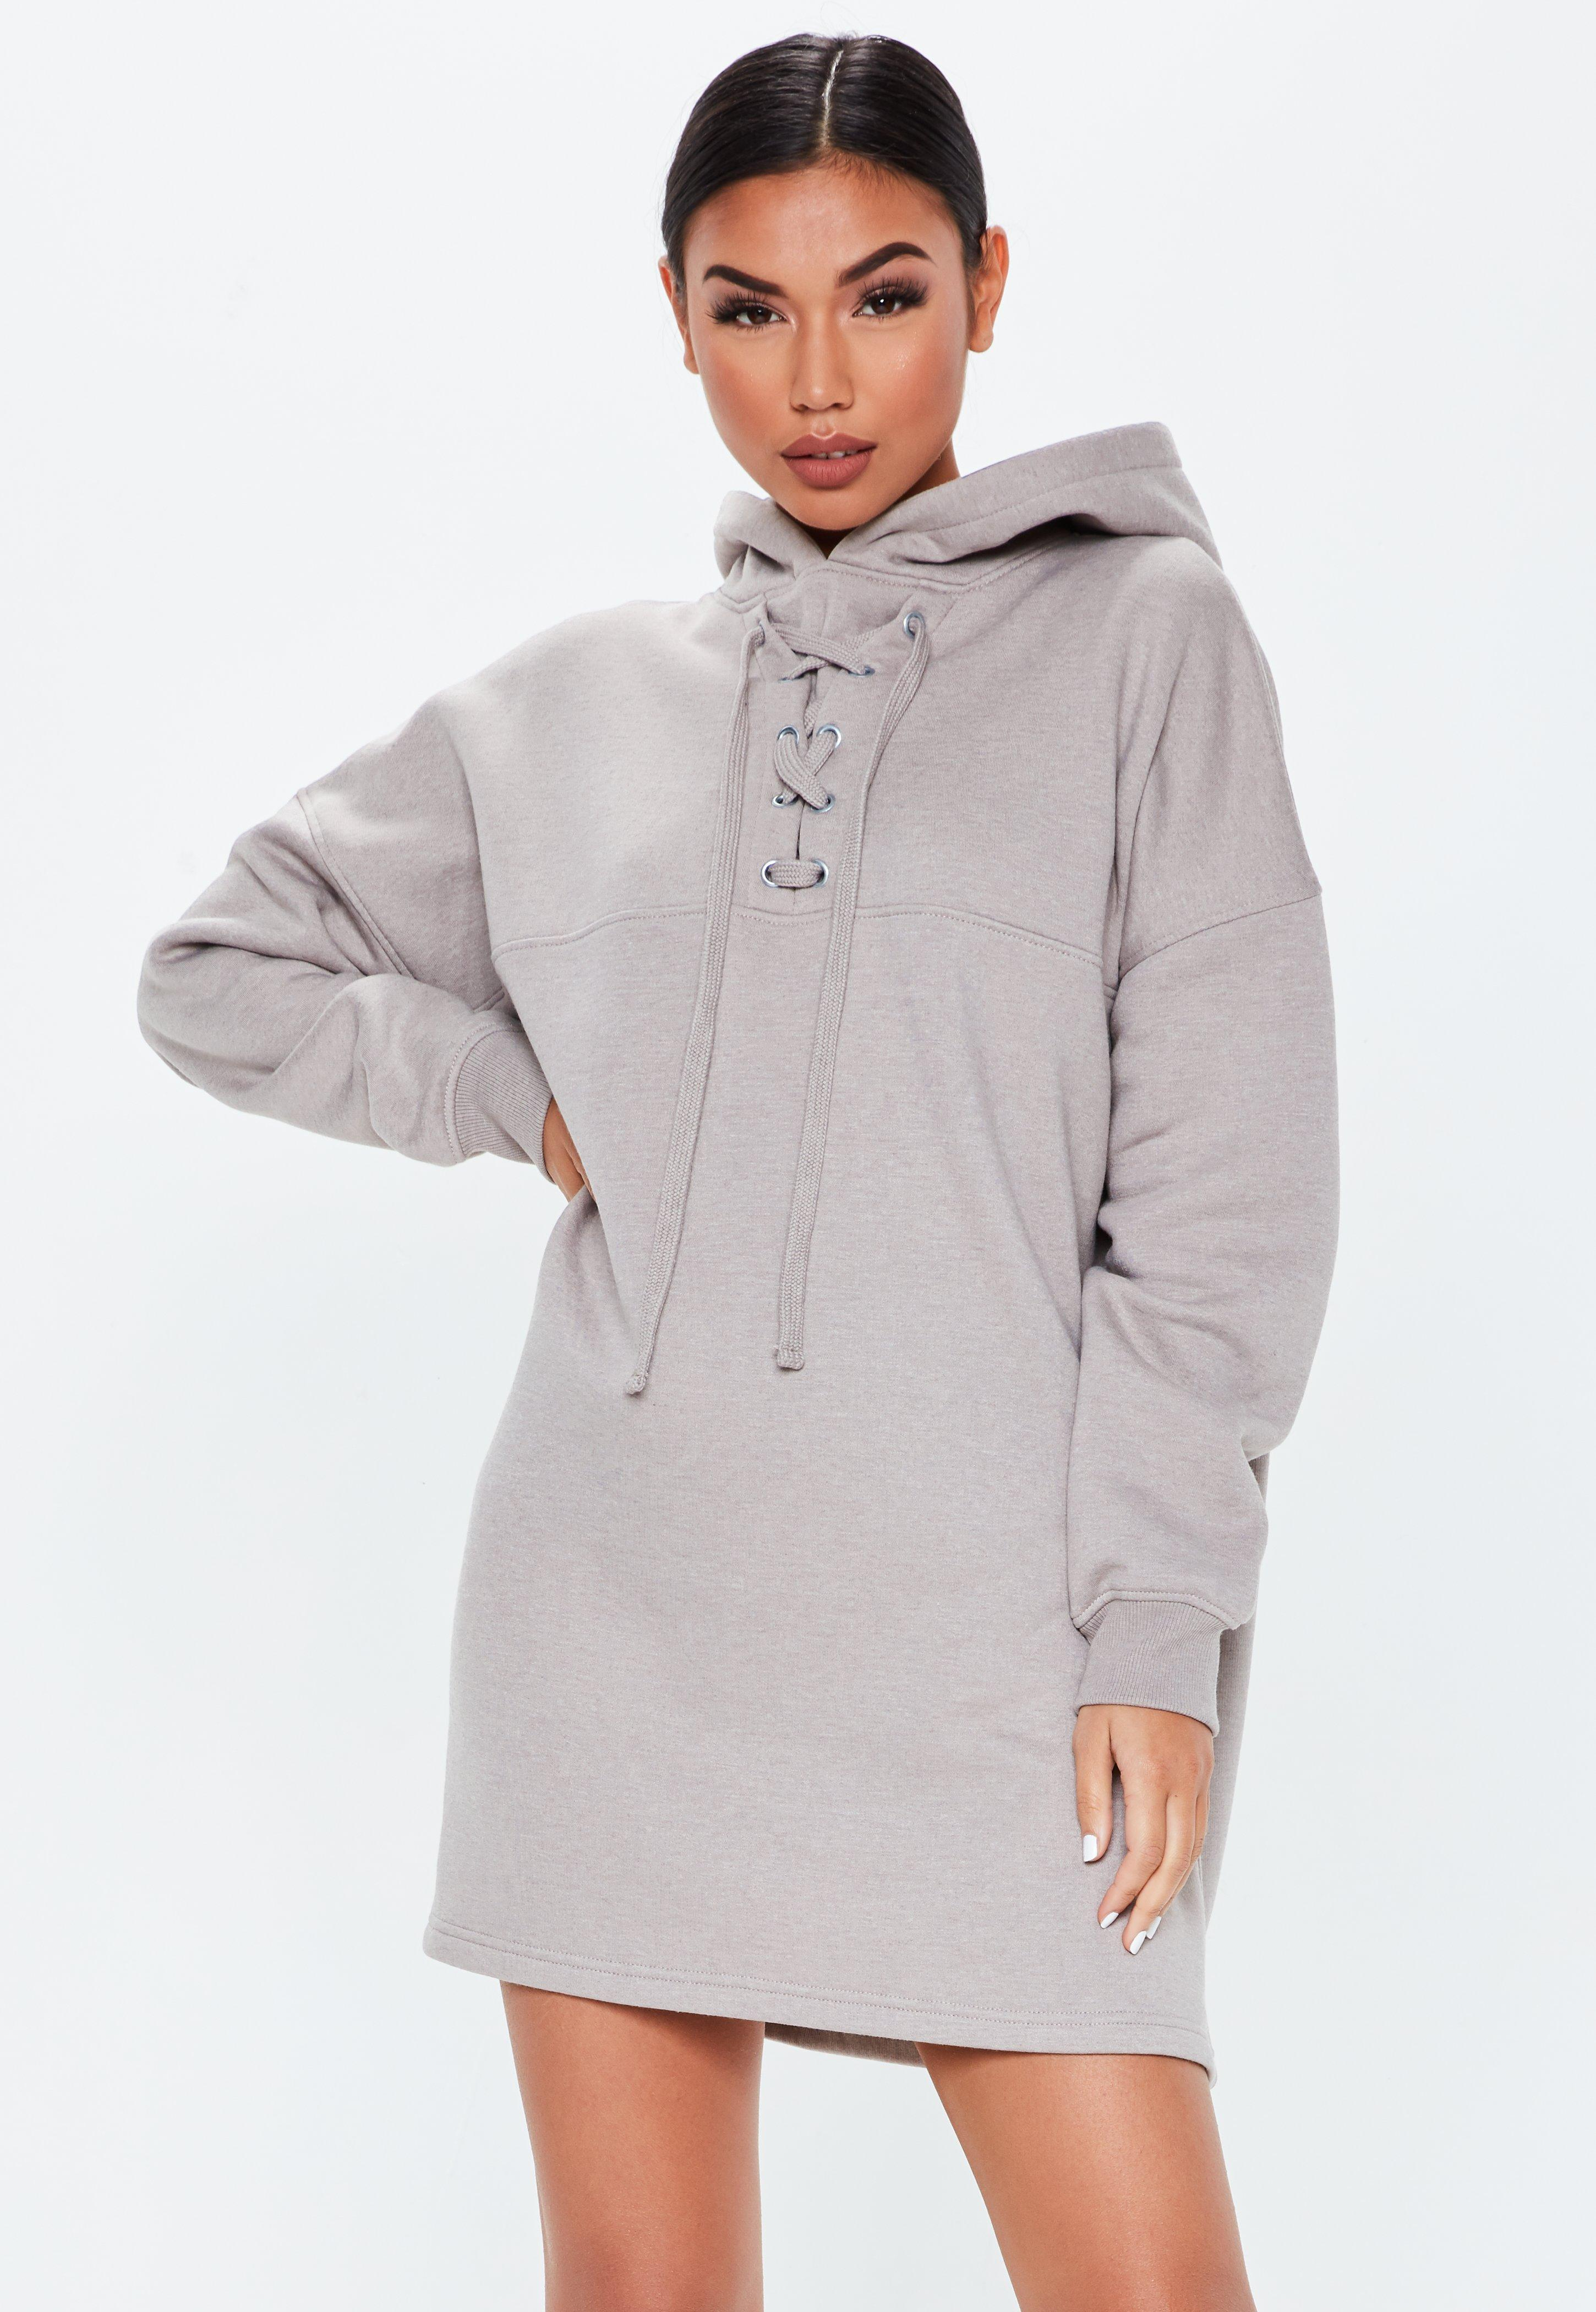 Lyst - Missguided Grey Lace Up Pocket Front Hoodie Dress in Gray e261f057a